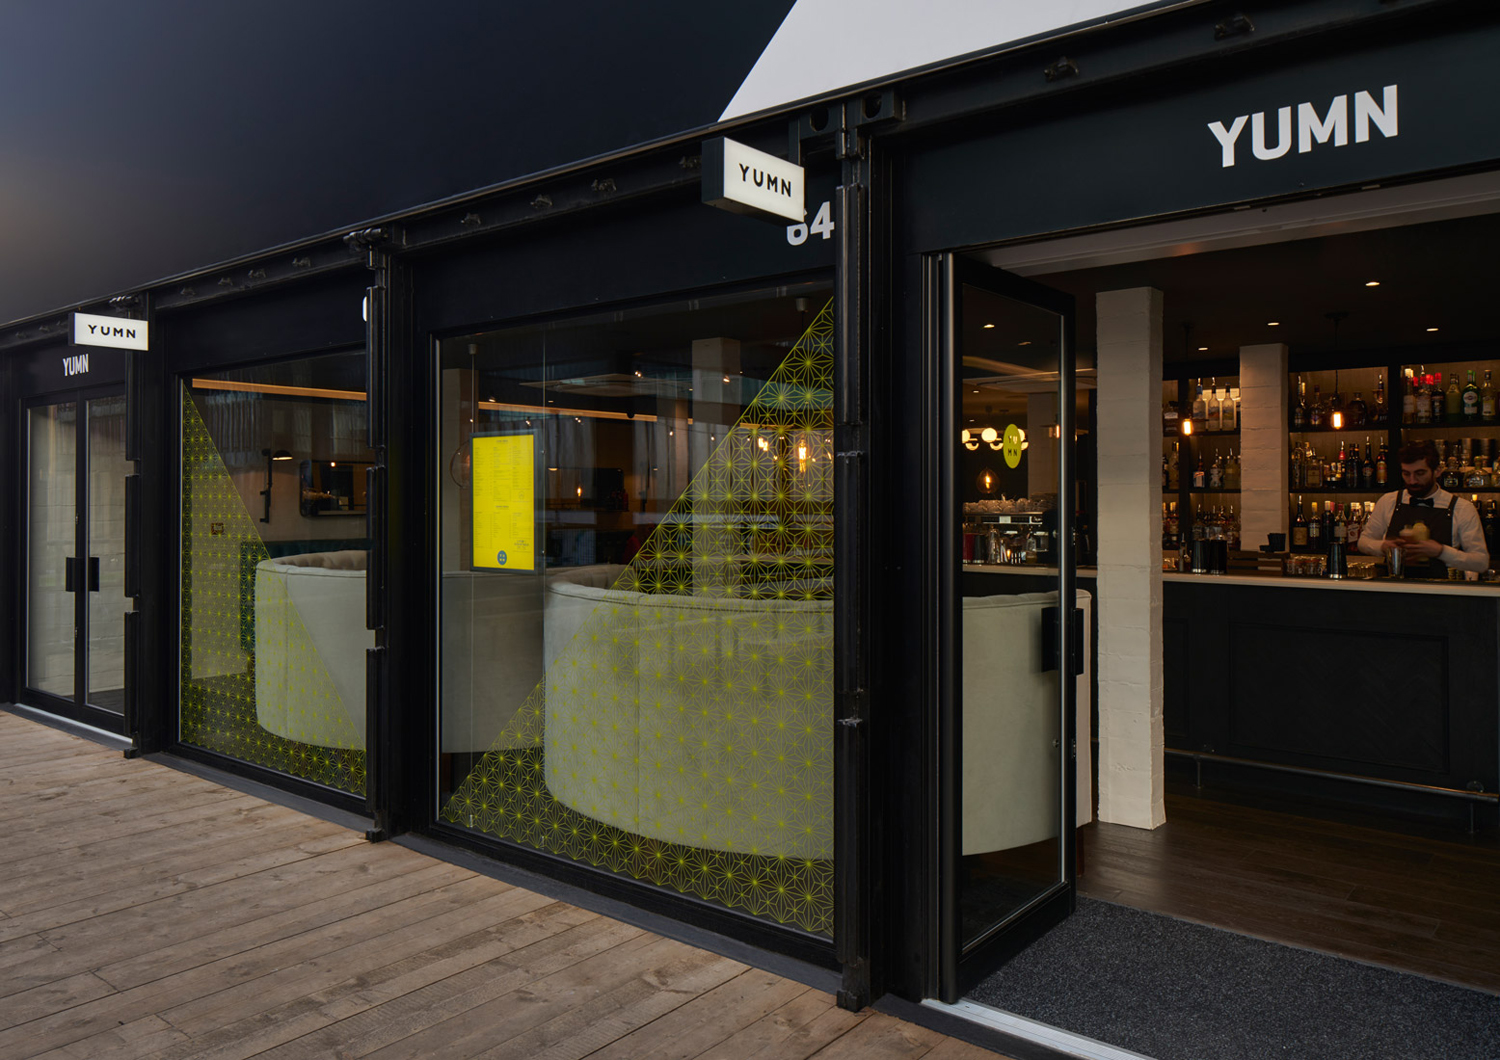 Logo, window graphics and signage by Brighton-based Filthymedia for Boxpark Croydon's casual luxury restaurant Yumn